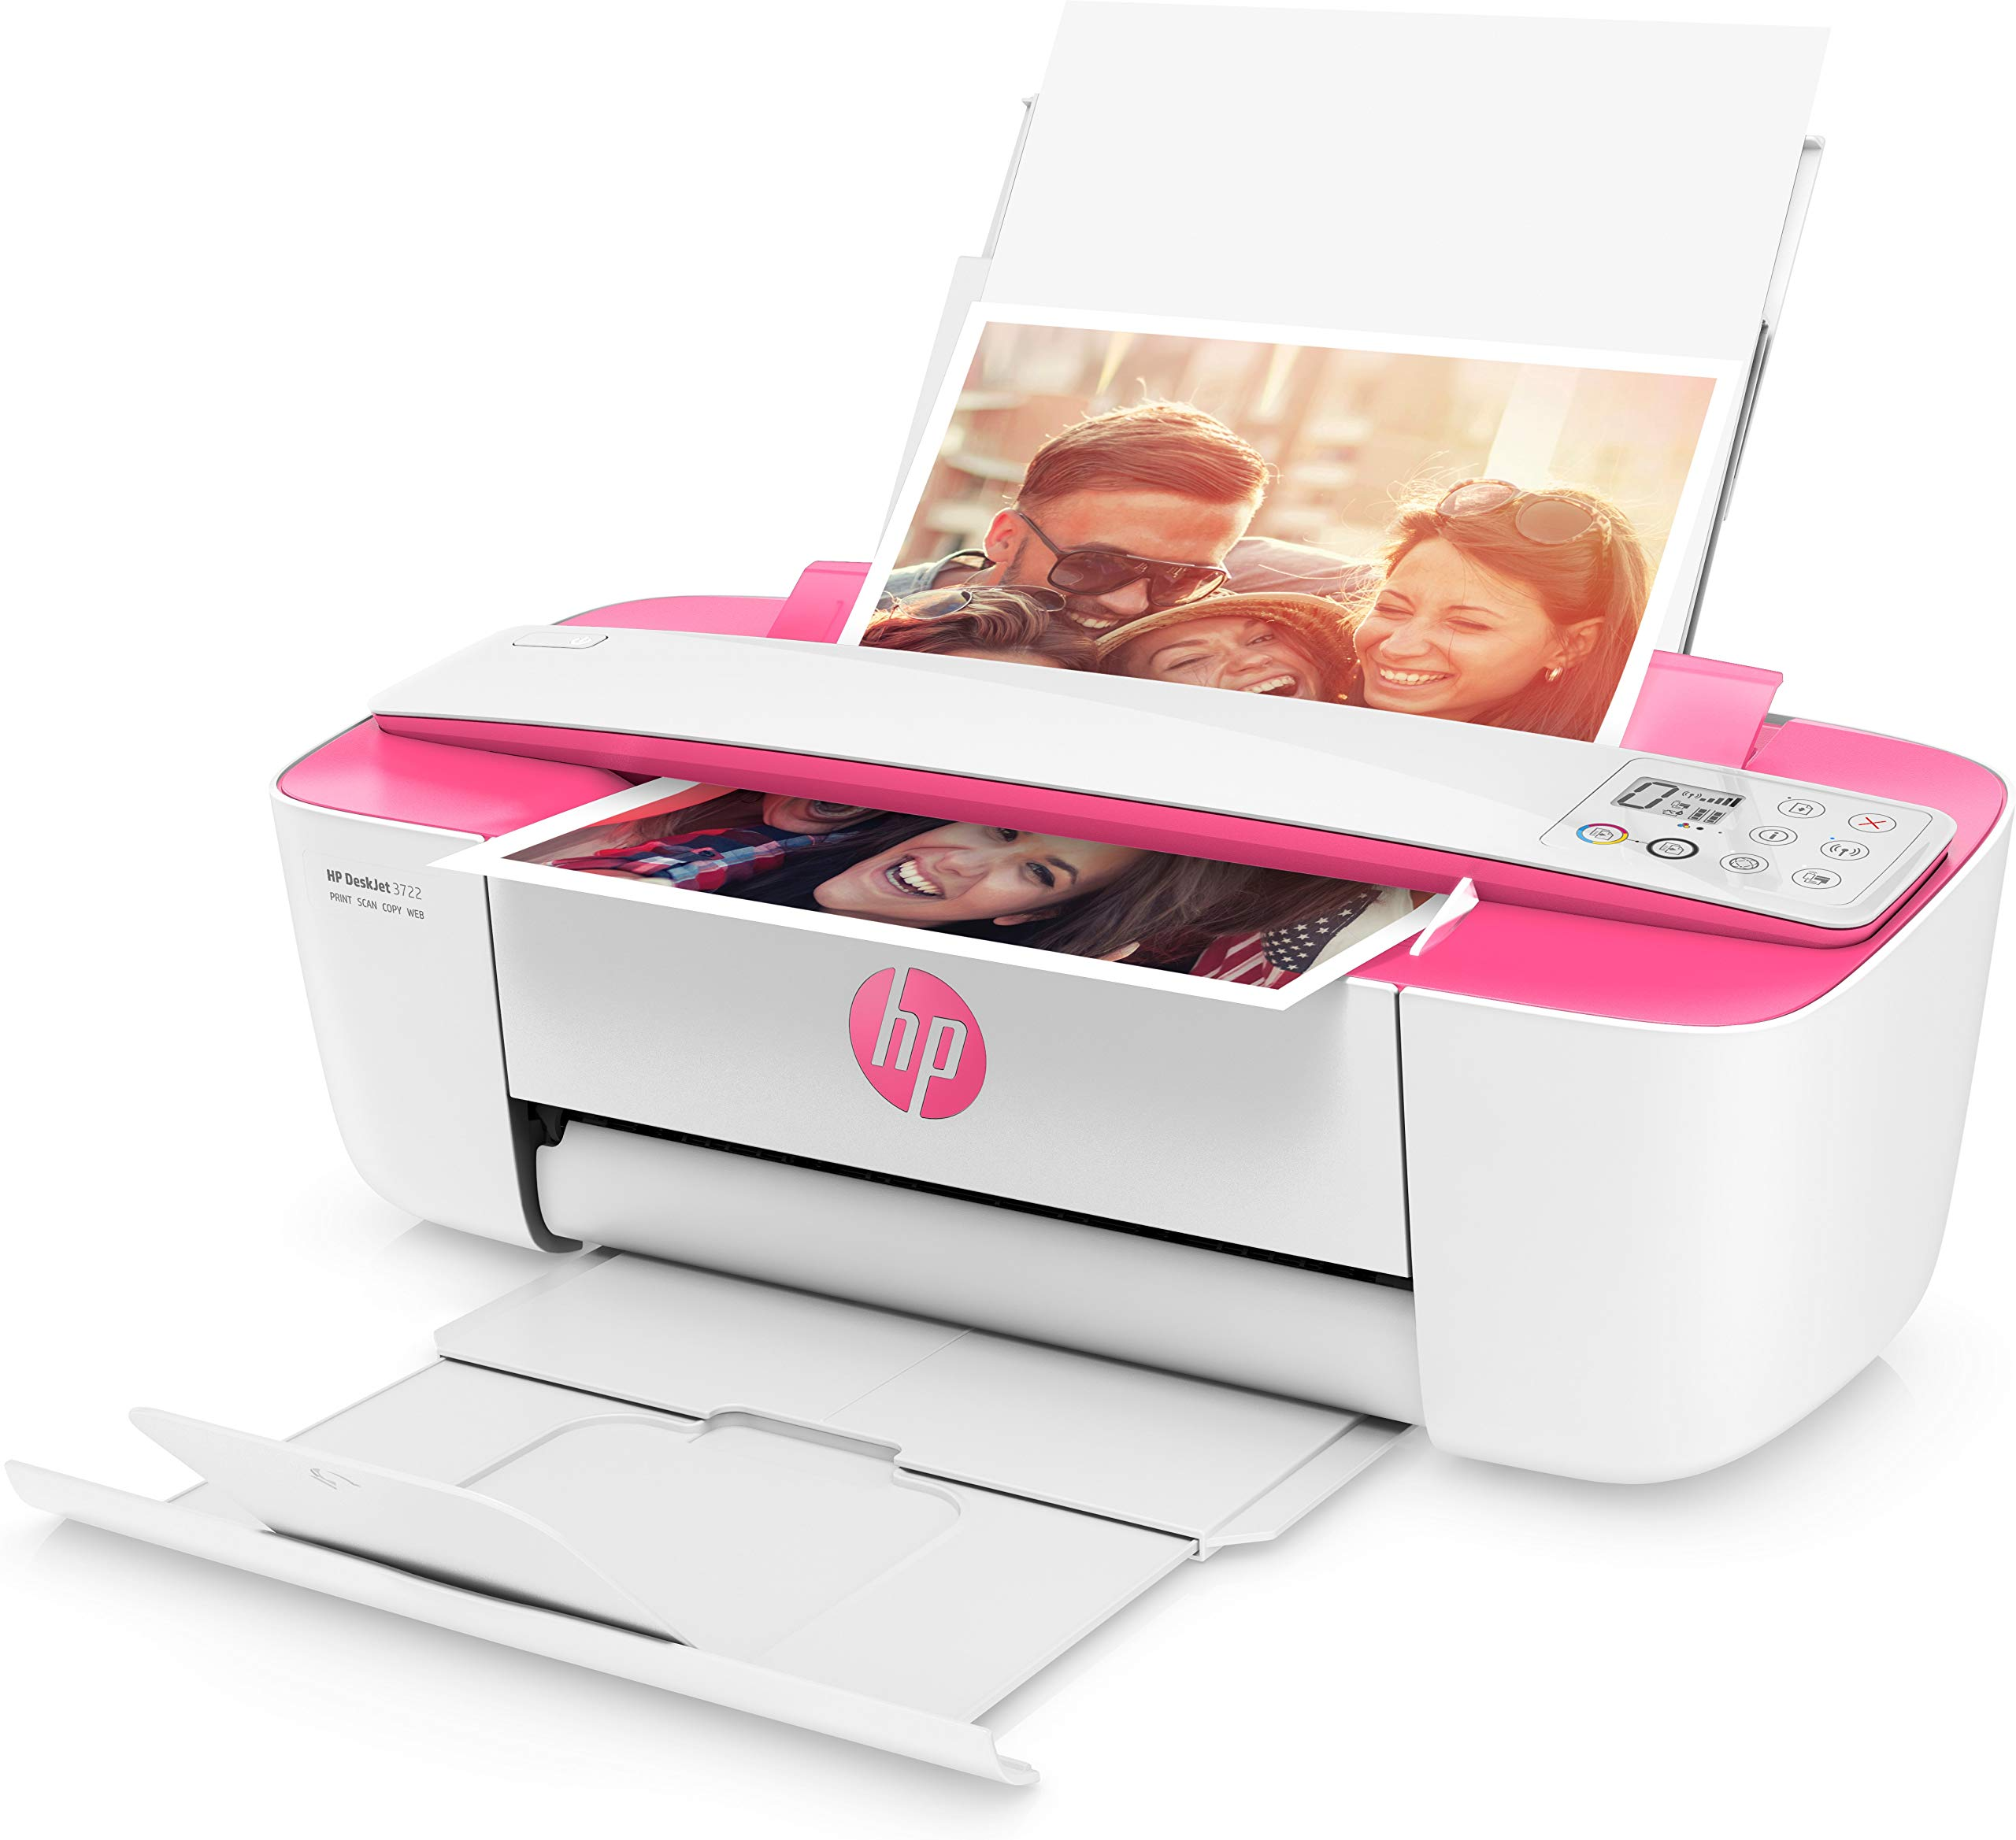 Impresora HP Deskjet 3722 All-in-One